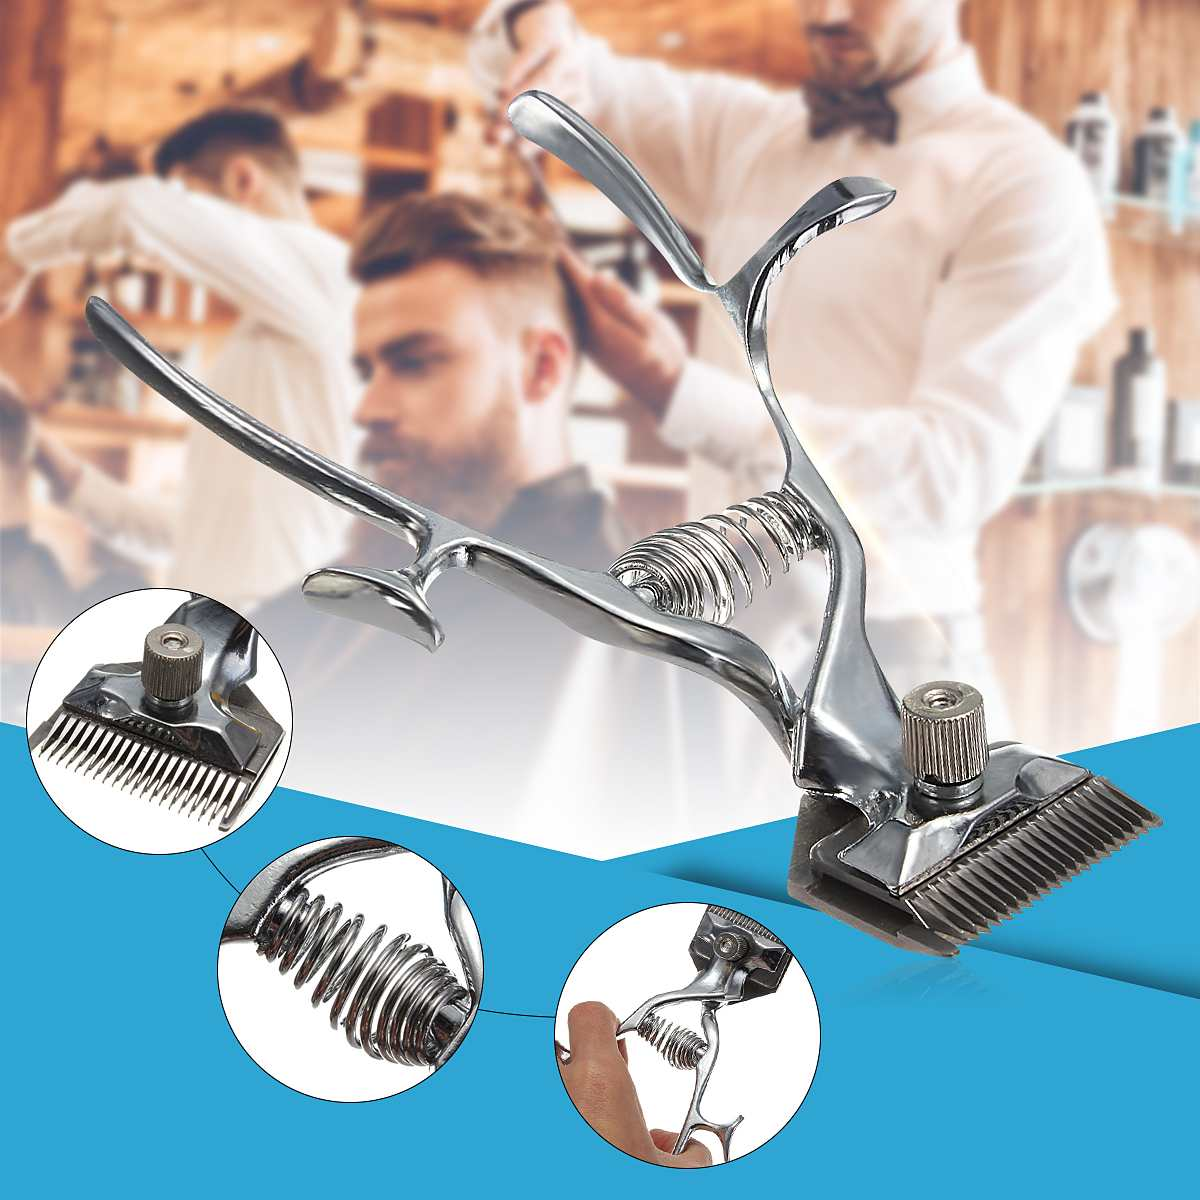 Old Fashion Manual Hair Clipper Vintage Barber Hand Clipper Portable Hair Trimming Manual Hair Clippers Silver Low Noise